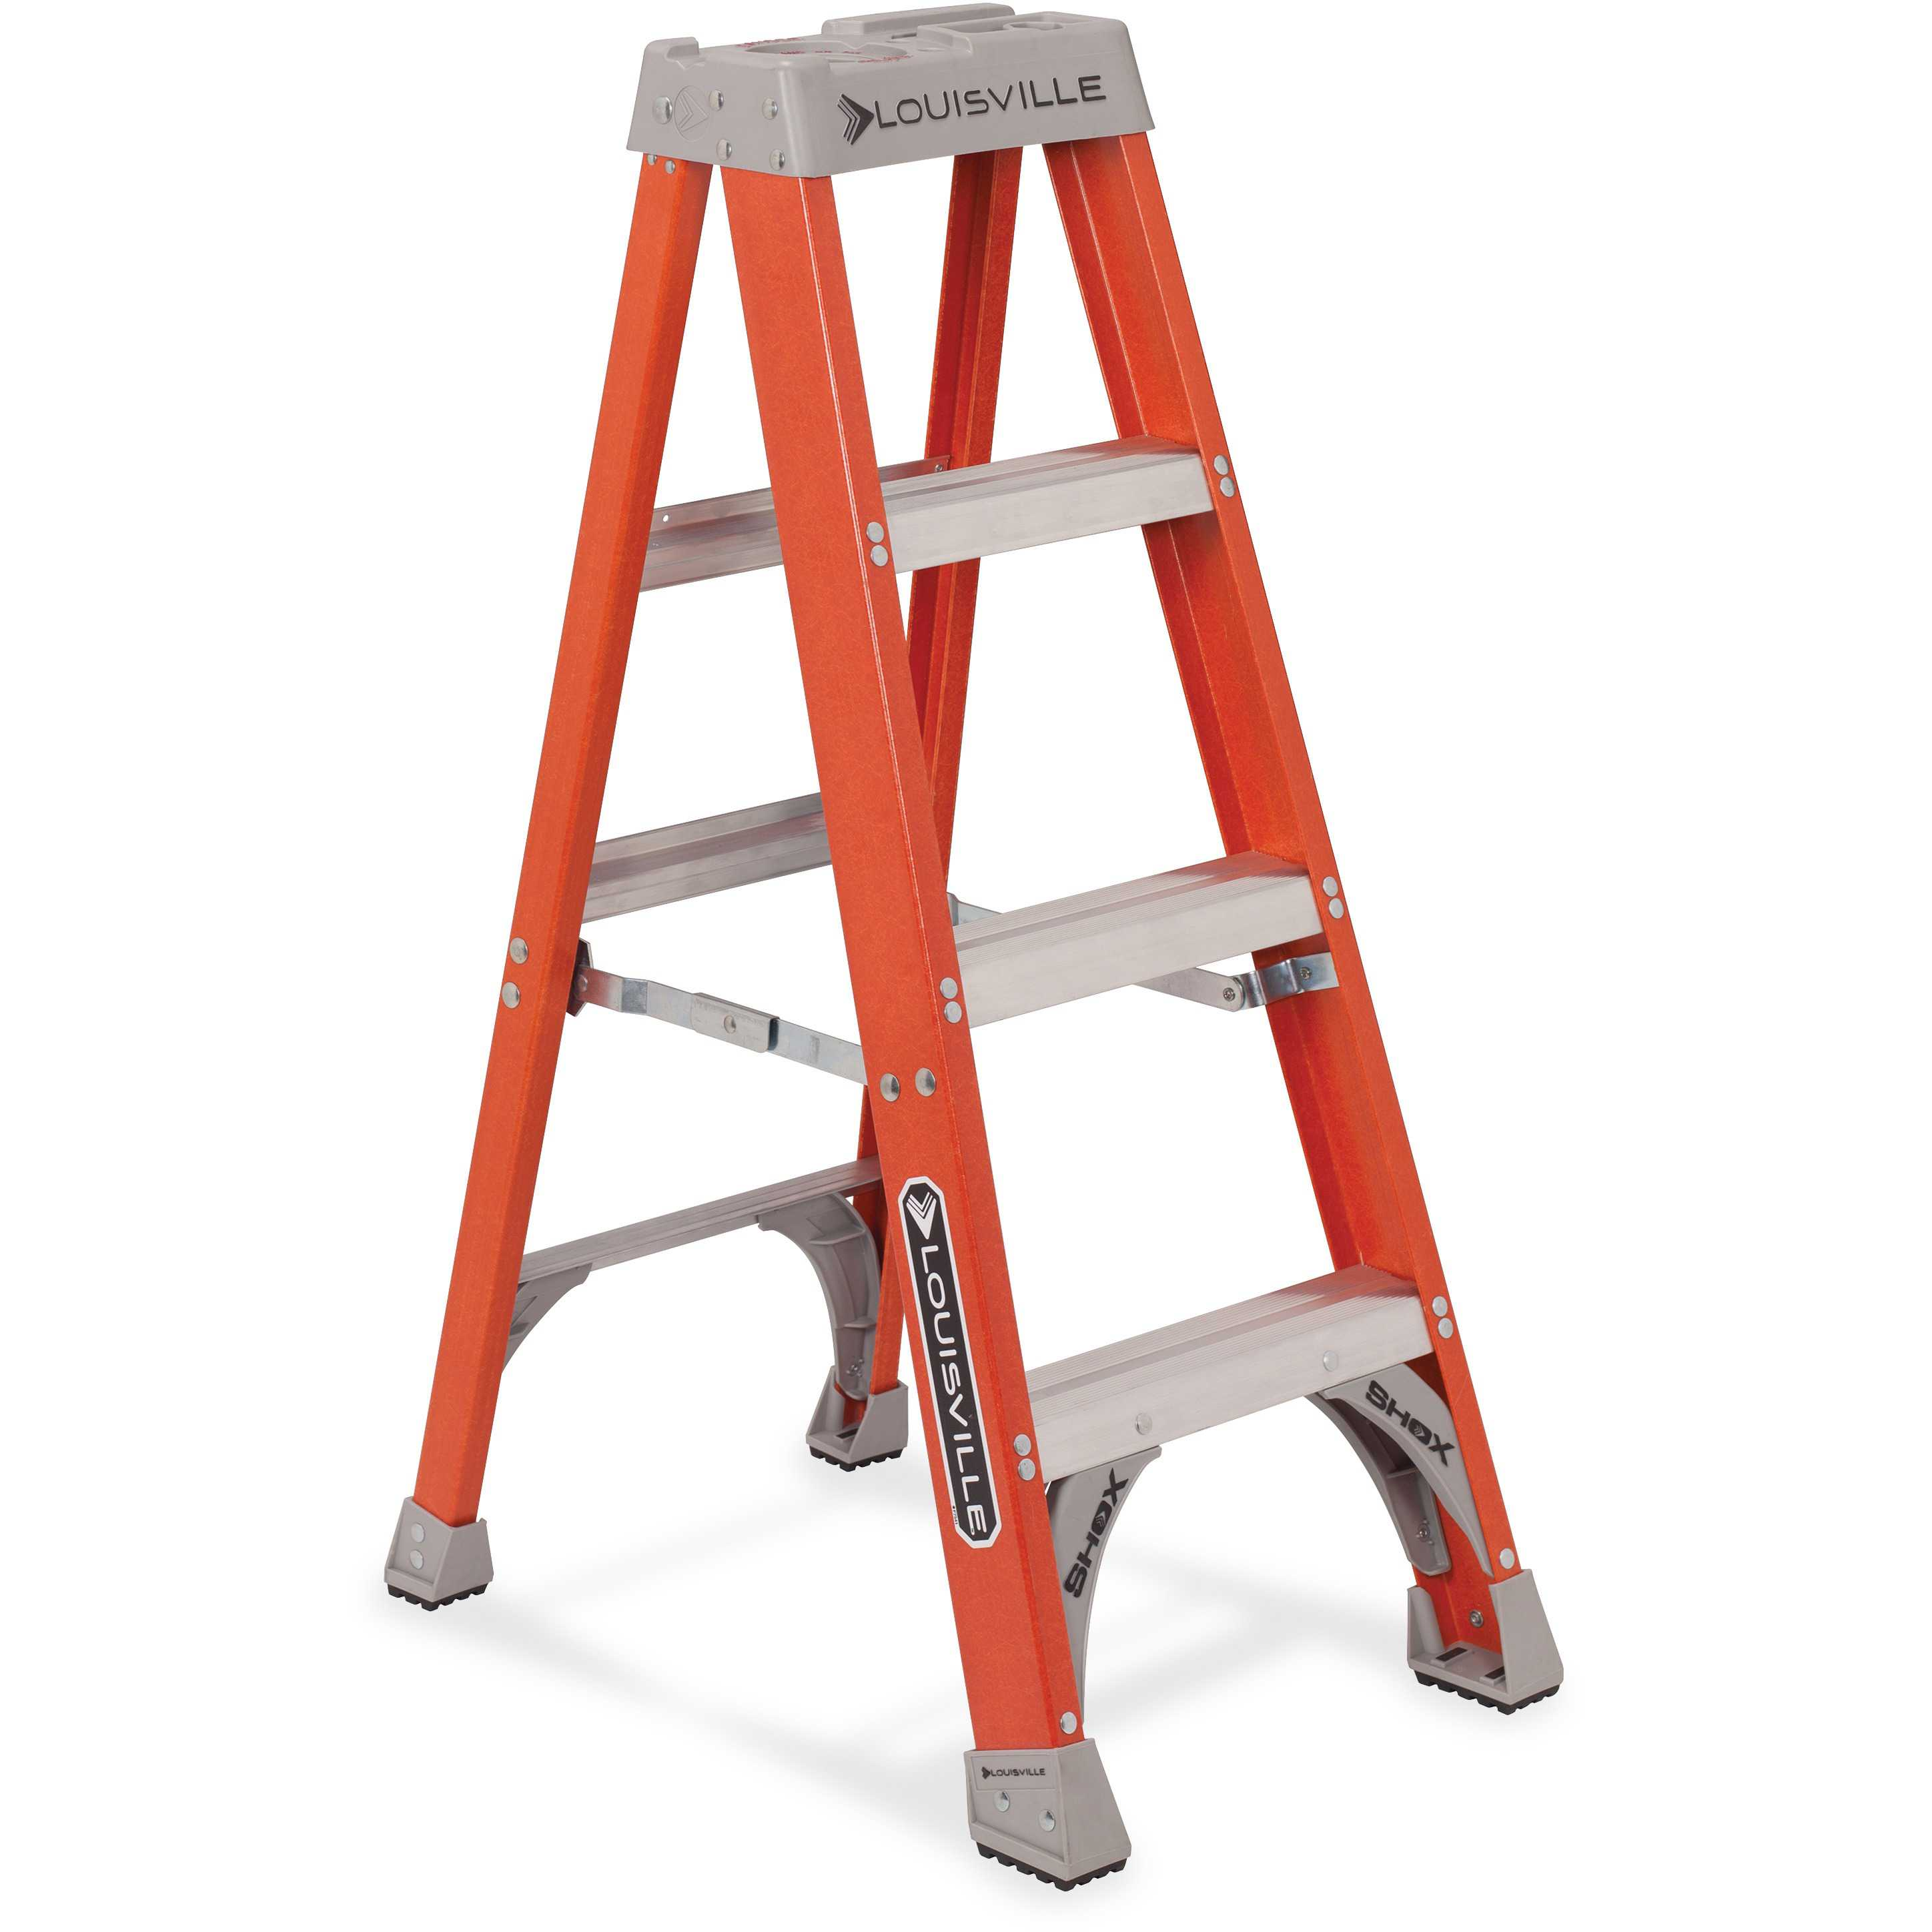 Louisville 4' Fiberglass Step Ladder, Orange